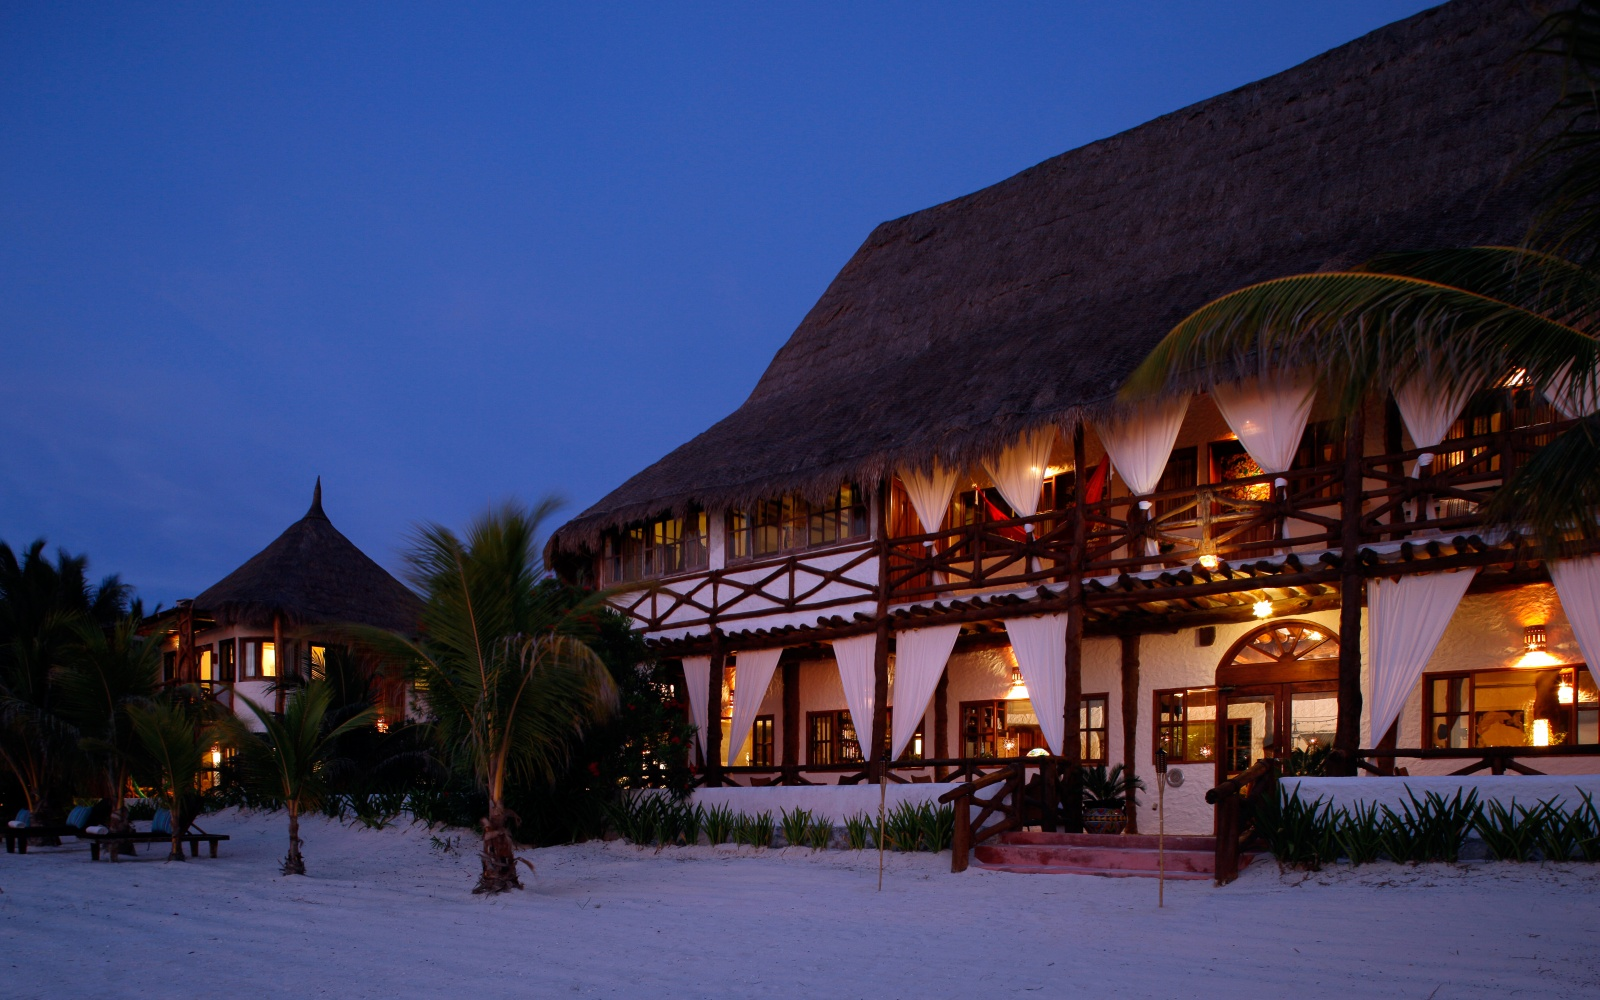 CasaSandra in Holbox, Mexico